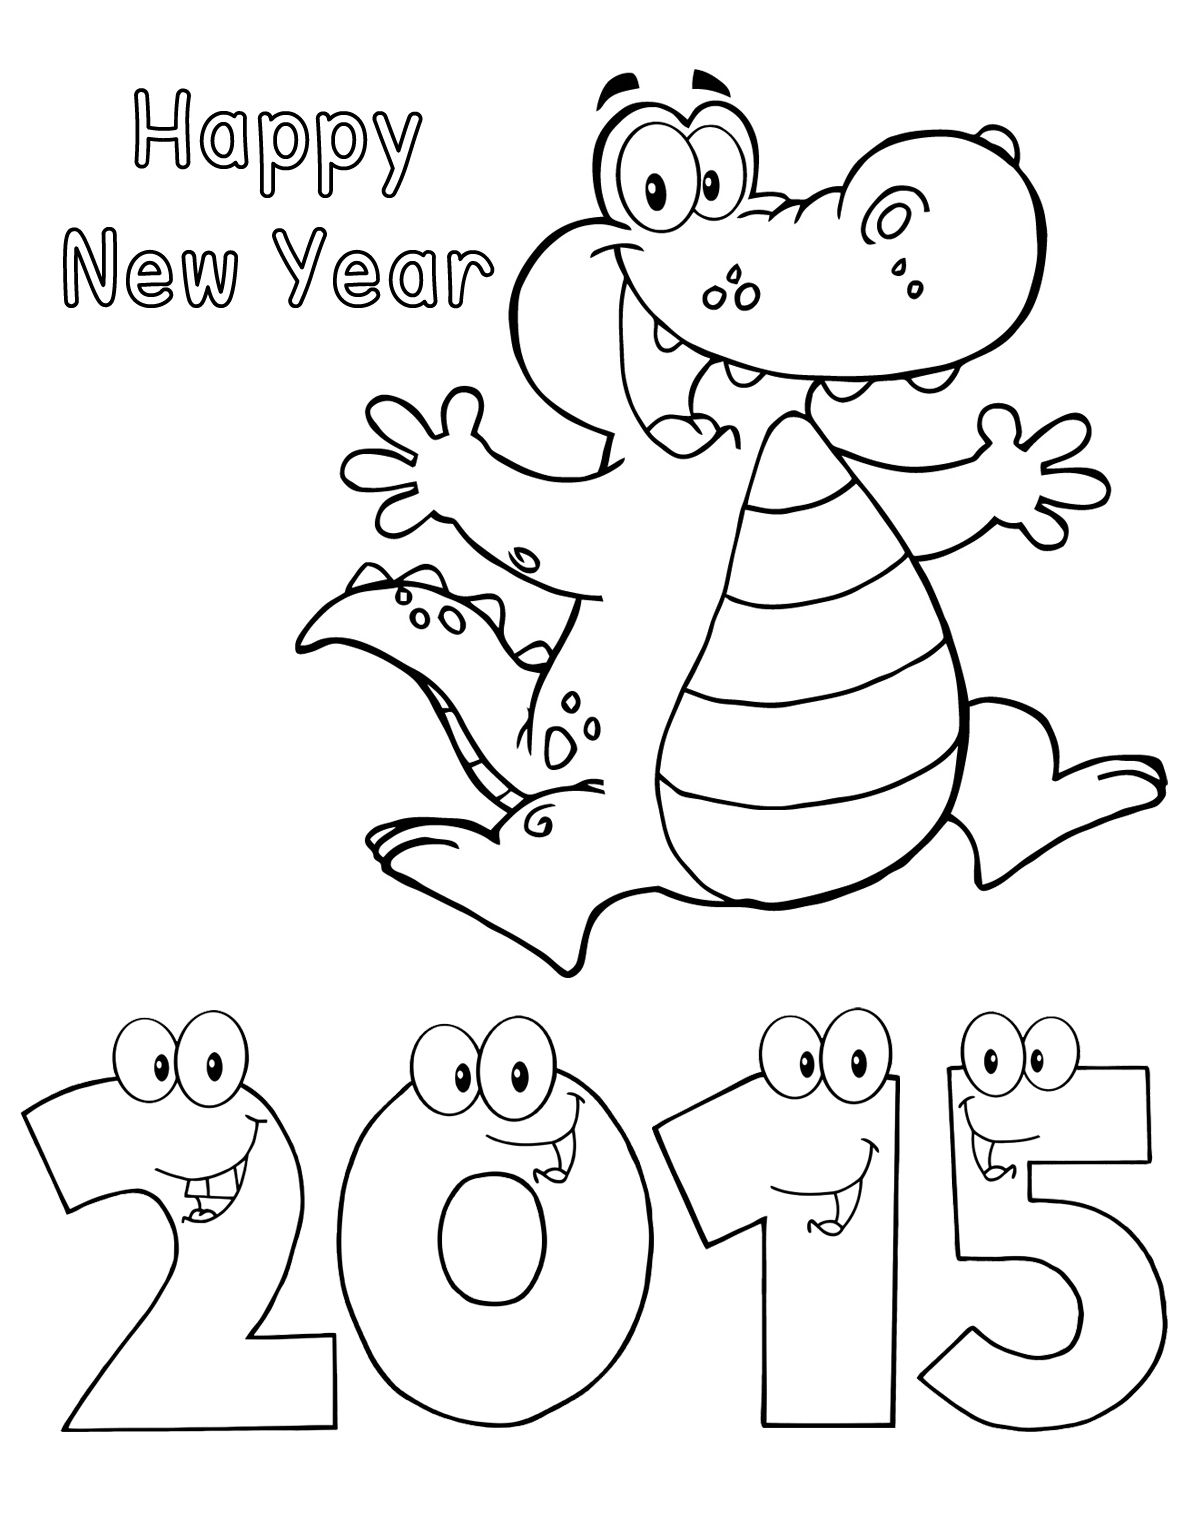 2015 coloring pages, printable 2015 coloring pages, free 2015 ...